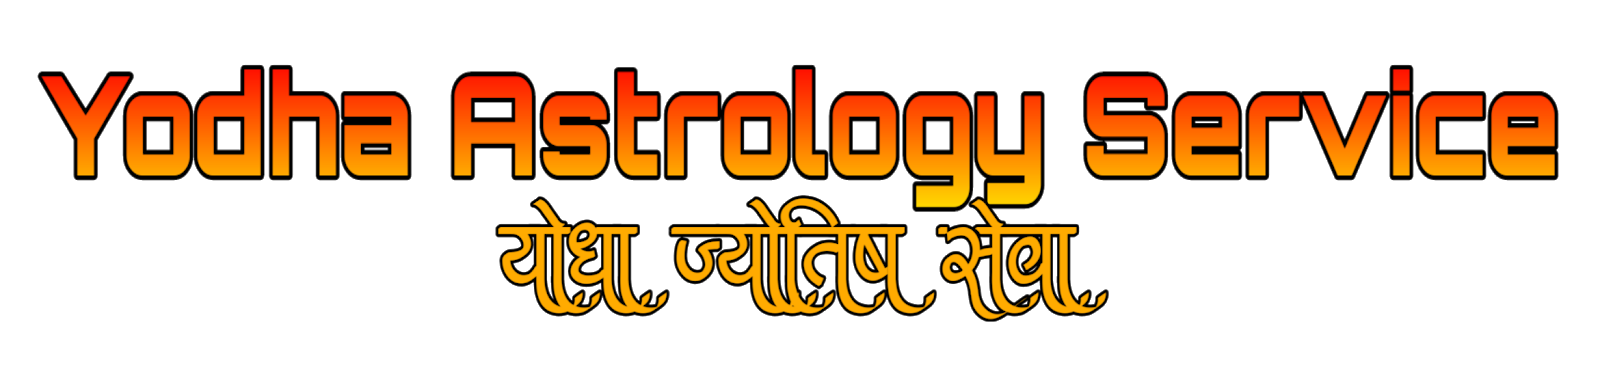 WWW.YODHA.COM.NP -  Free Personalised Horoscope & Chart Reading Service